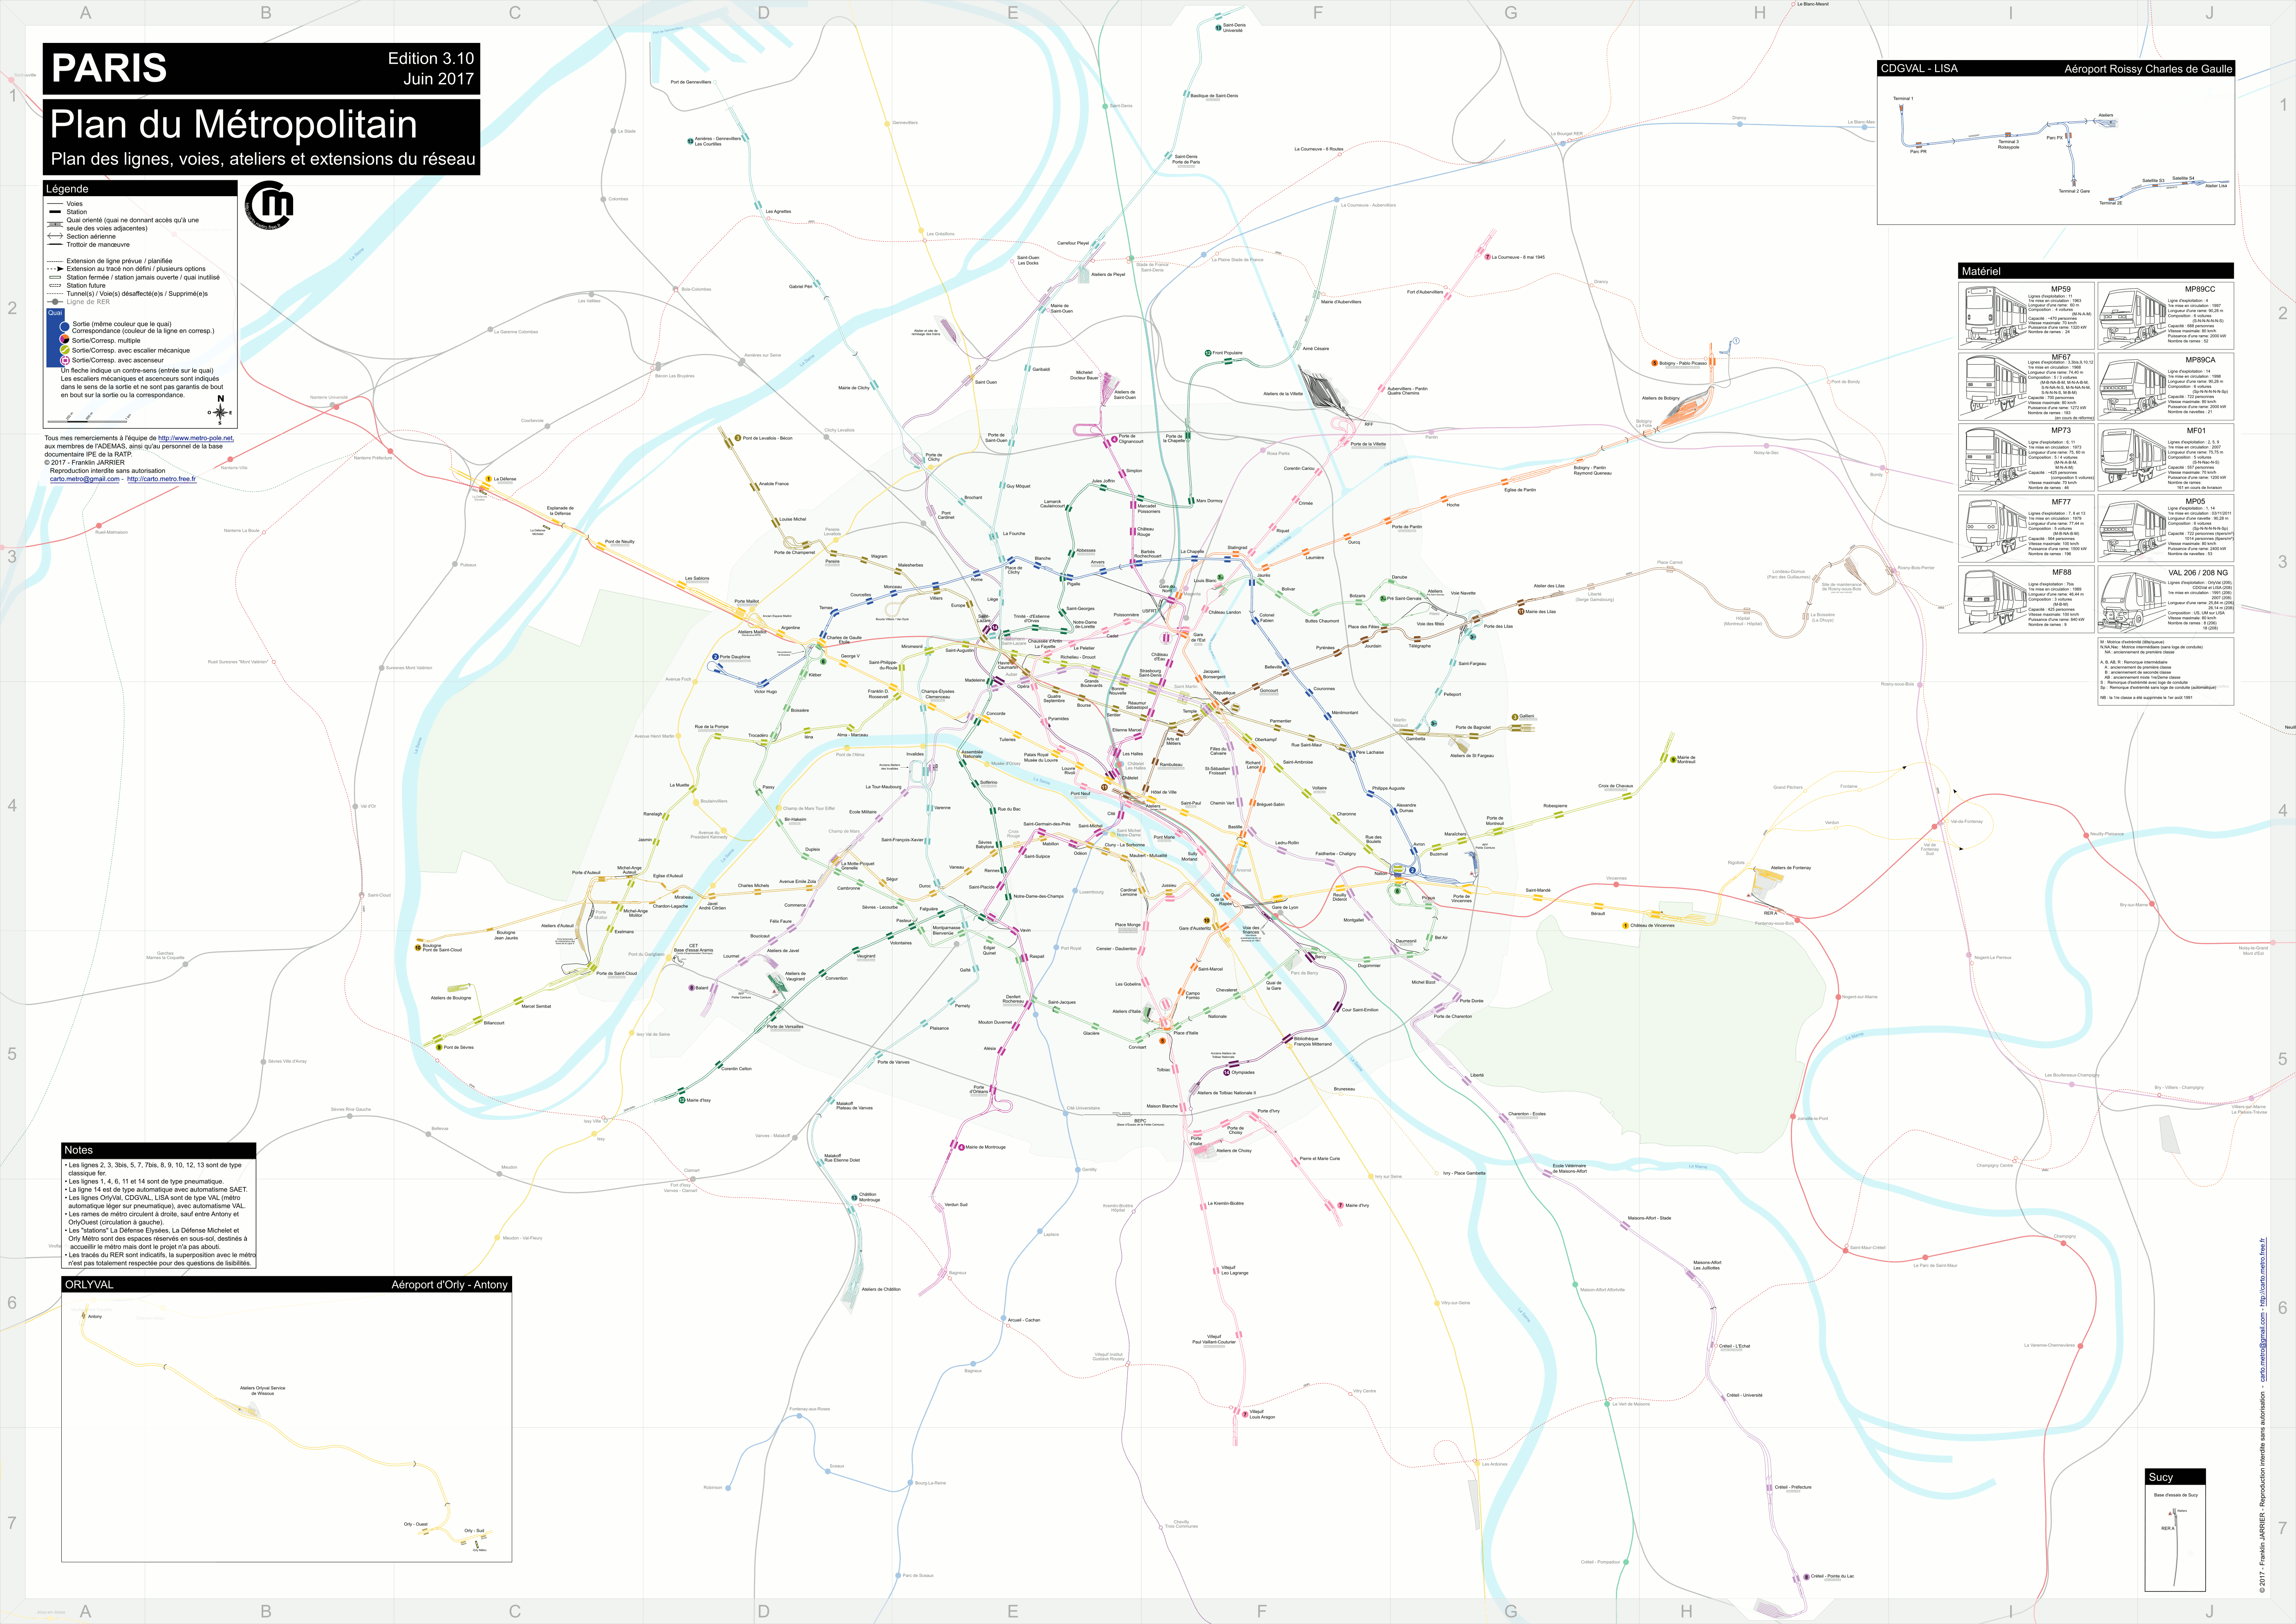 Detailled Tracks Map Paris Lyon Lausanne Milan Turin Tracks Maps - Paris map metro